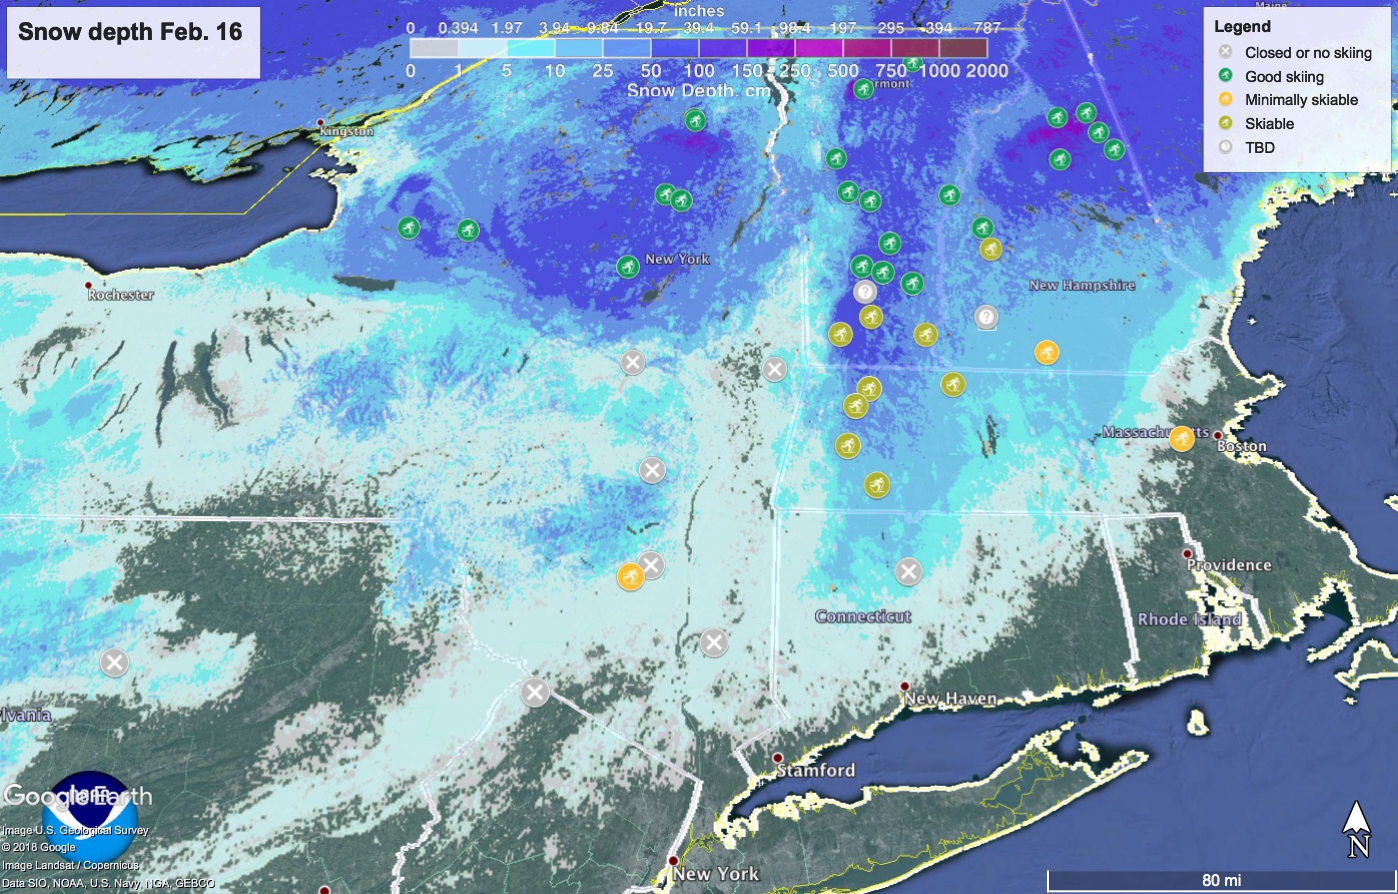 Snow depth in northeast US February 16